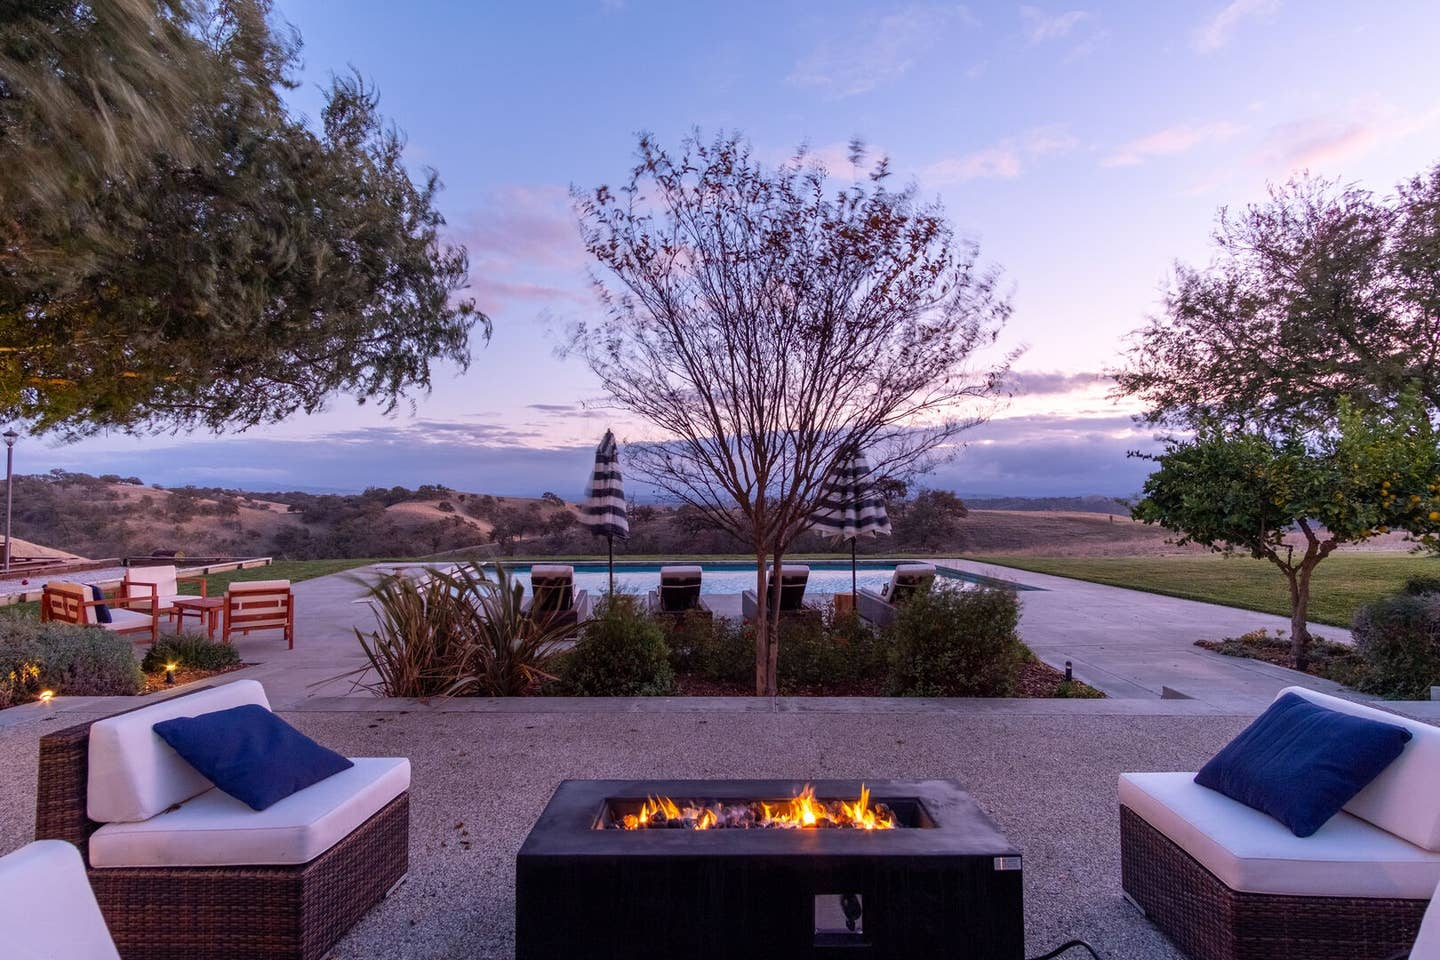 Airbnb Paso Robles: Best of the Best